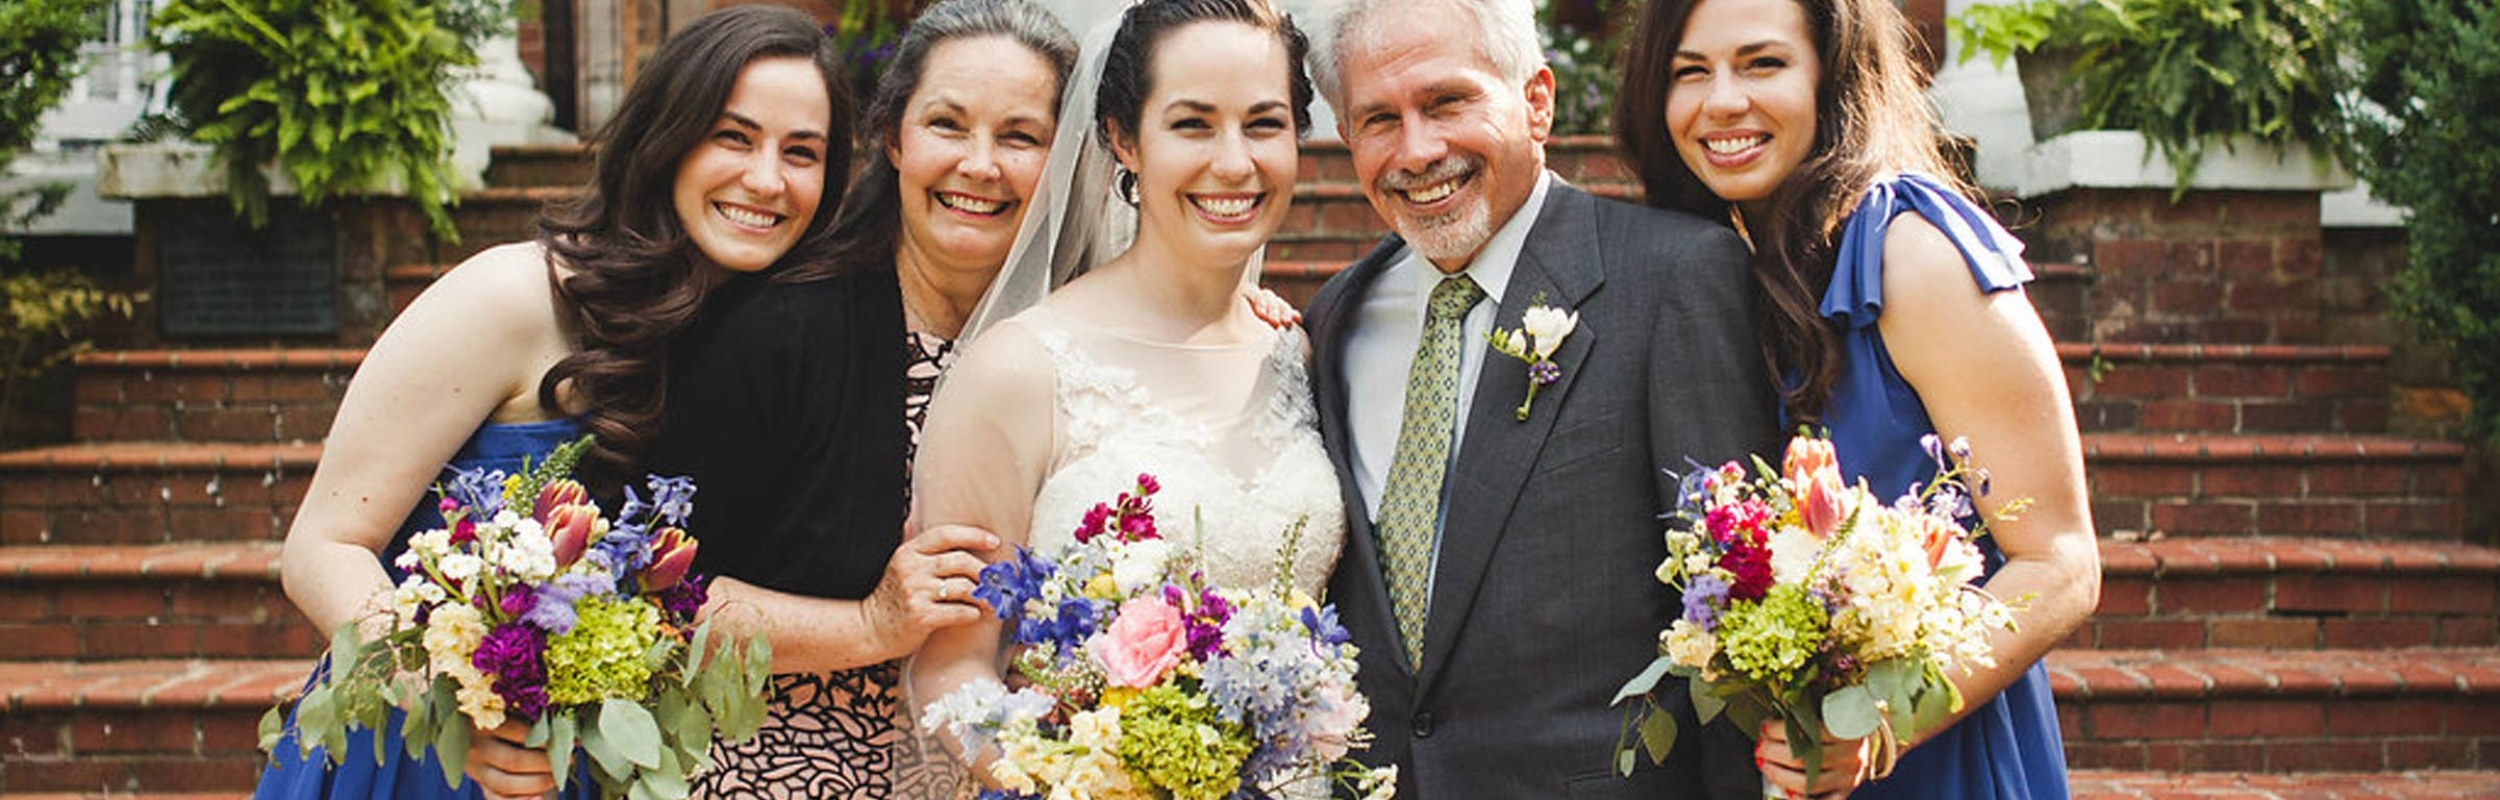 bridal-family-flowers